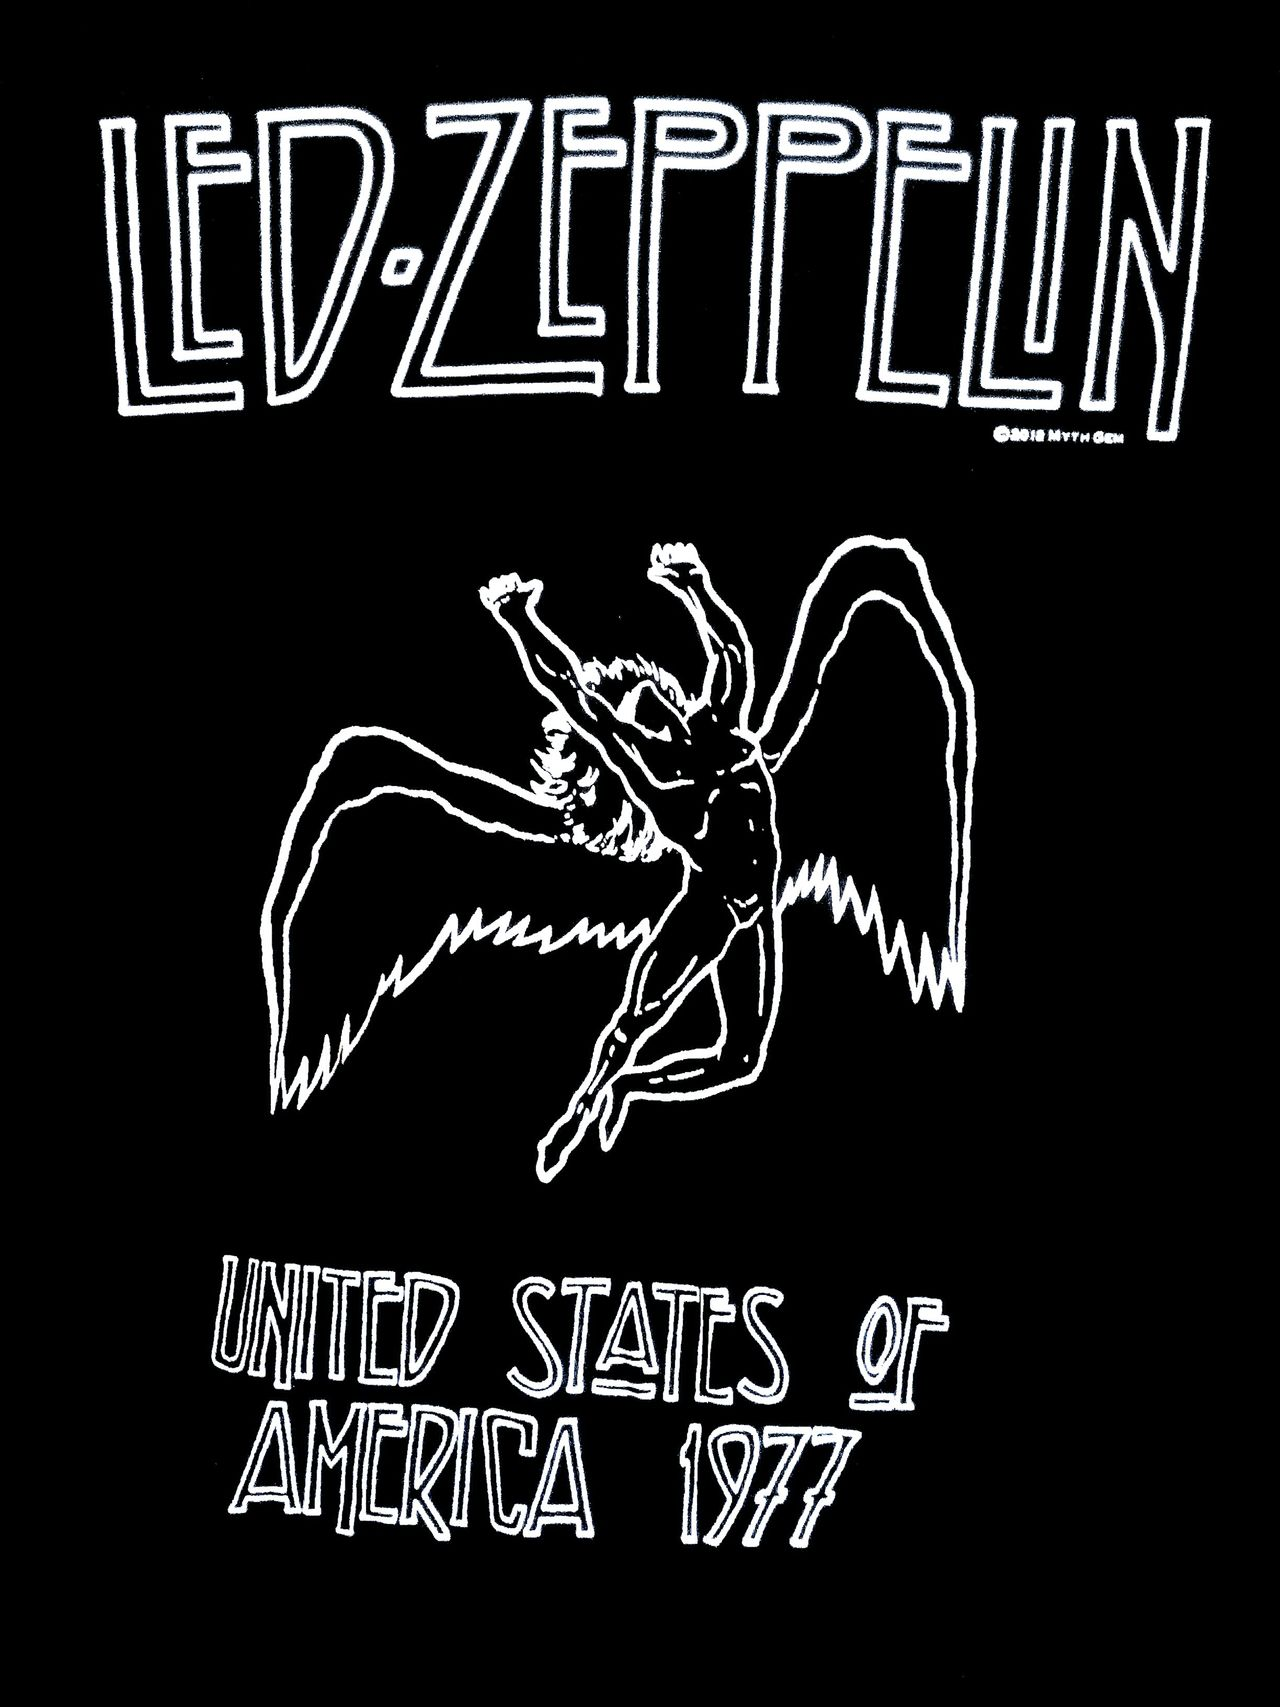 Led Zeppelin Led Zepp Led Zeppelin T Shirts Ledzeppelin T Shirt 1977concert United States Of America Black And White Tshirt Tshirts Tshirtcollection Tshirtporn Tshirt♡ T Shirts T Shirt Collection T Shirt Design Ledzepellin Ledzepp Tees Tee Shirt Tee Shirts Bandshirts Bandshirt